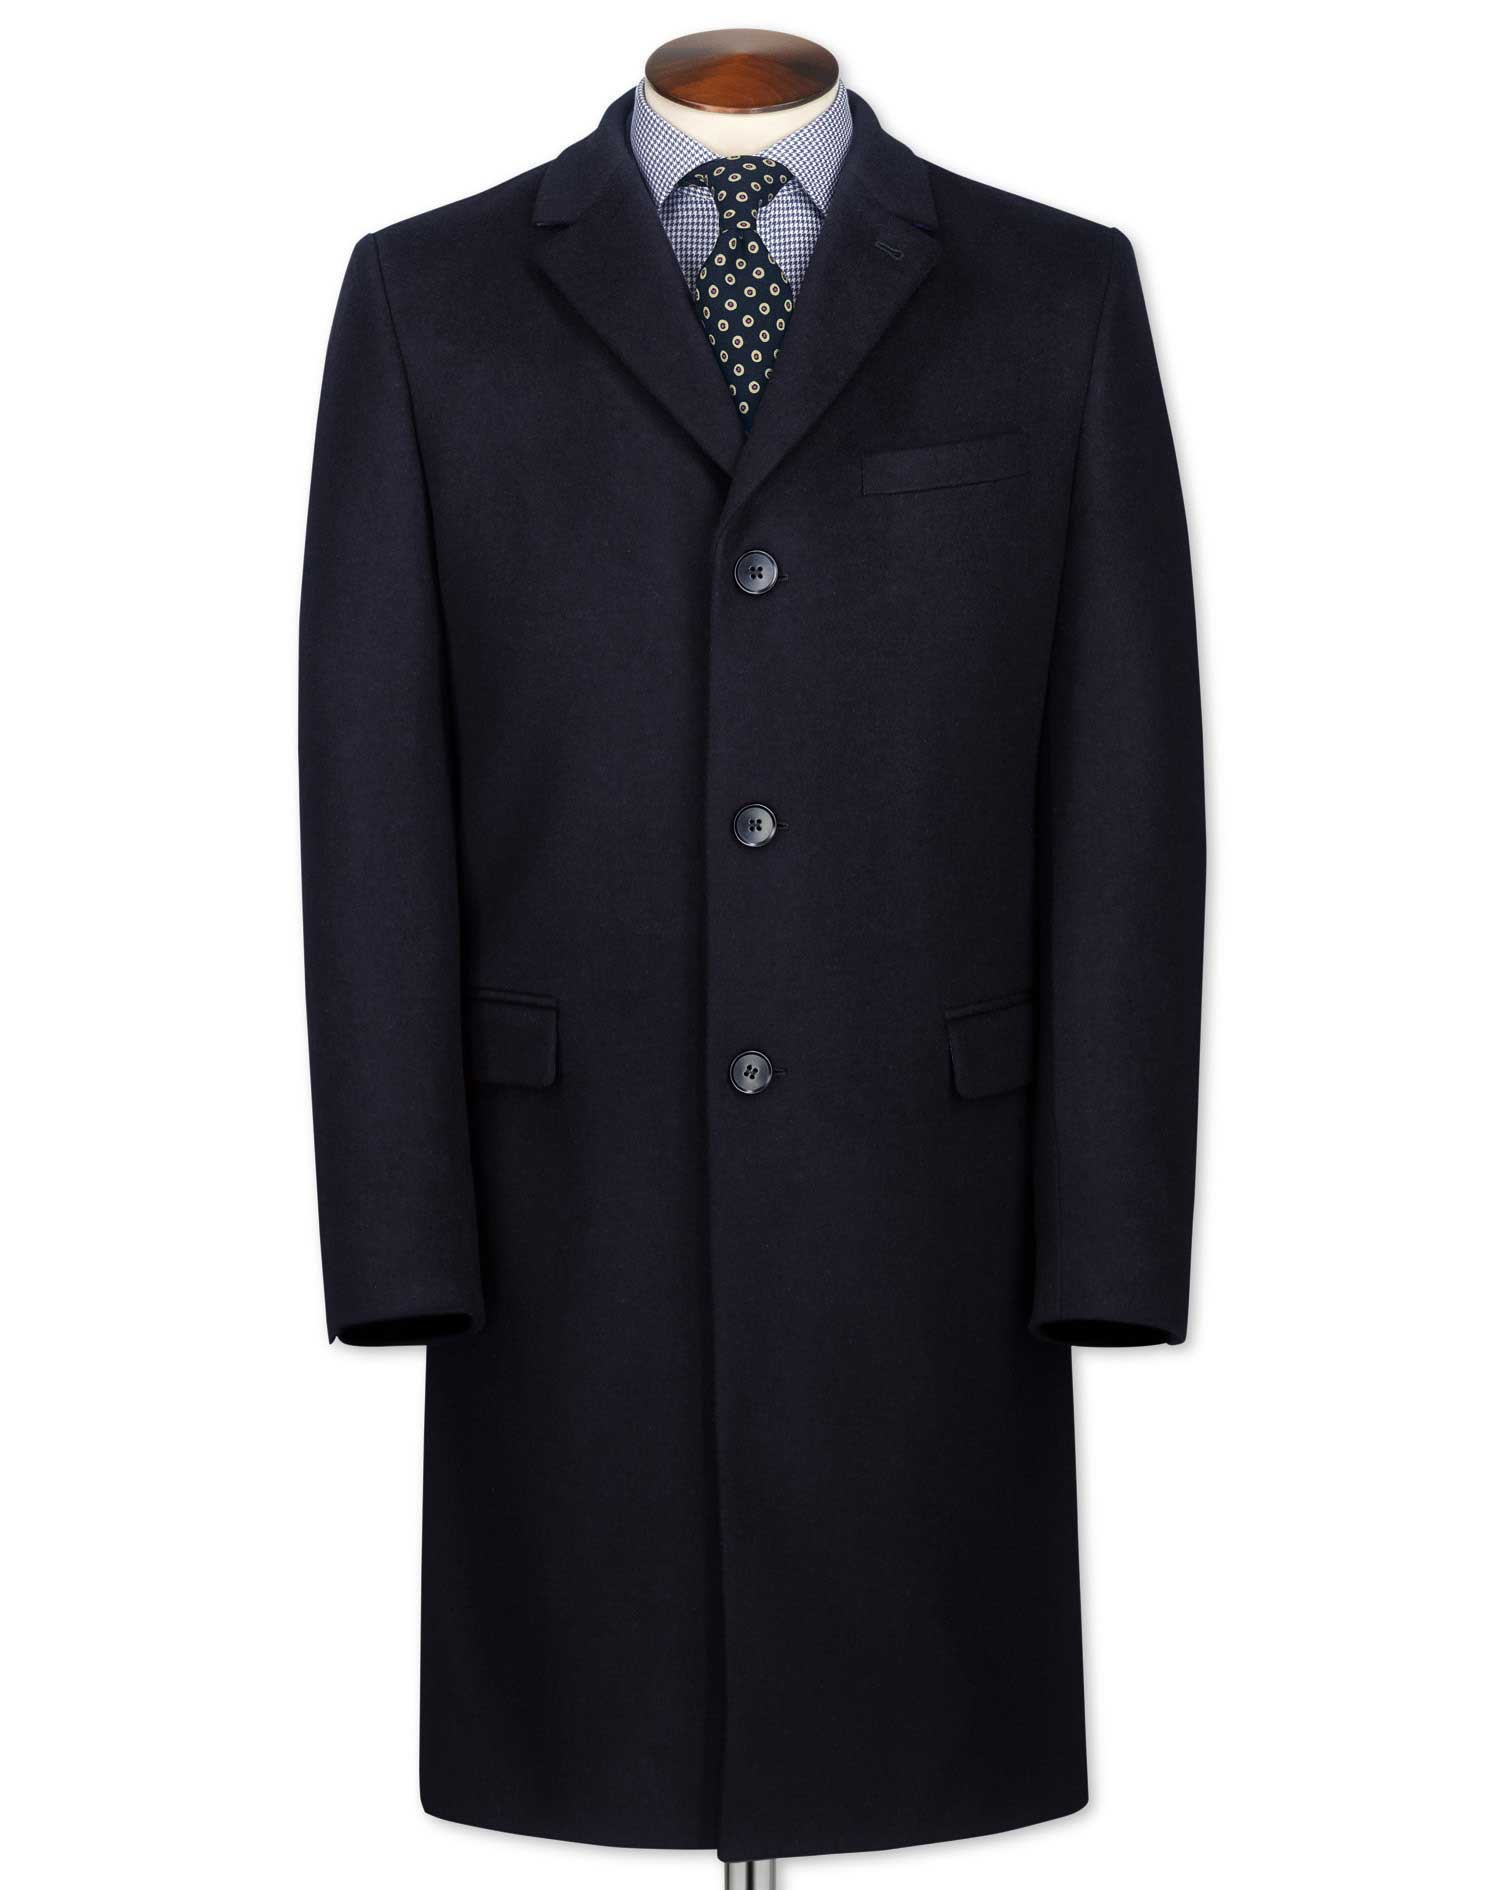 Classic fit navy wool and cashmere overcoat | Charles Tyrwhitt